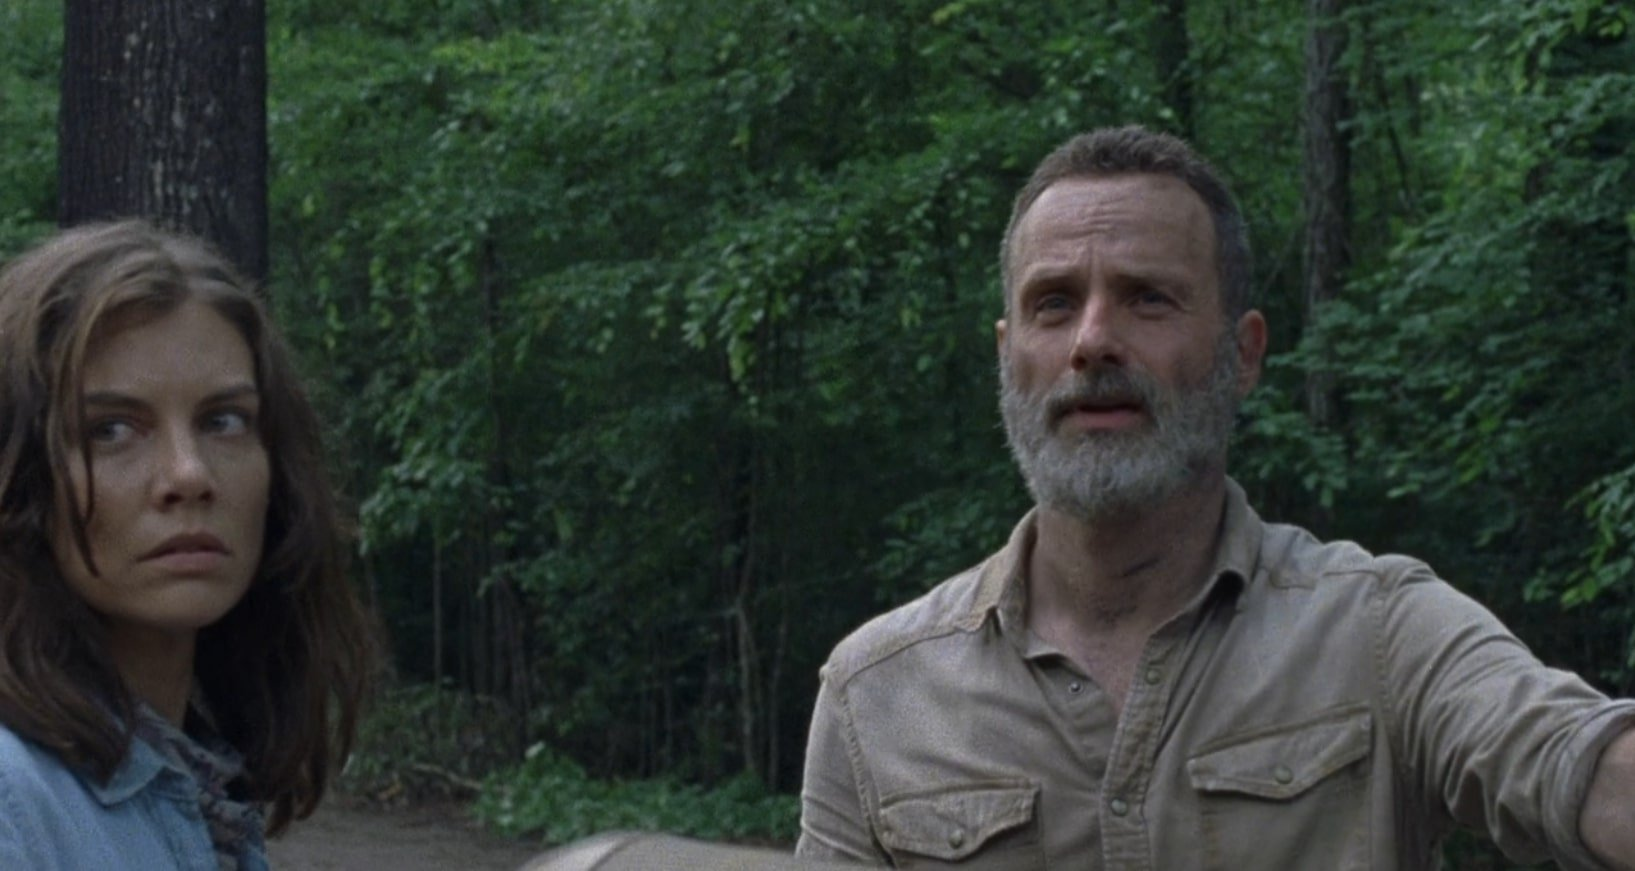 A still from season 9 episode 3 shows Maggie and Rick.